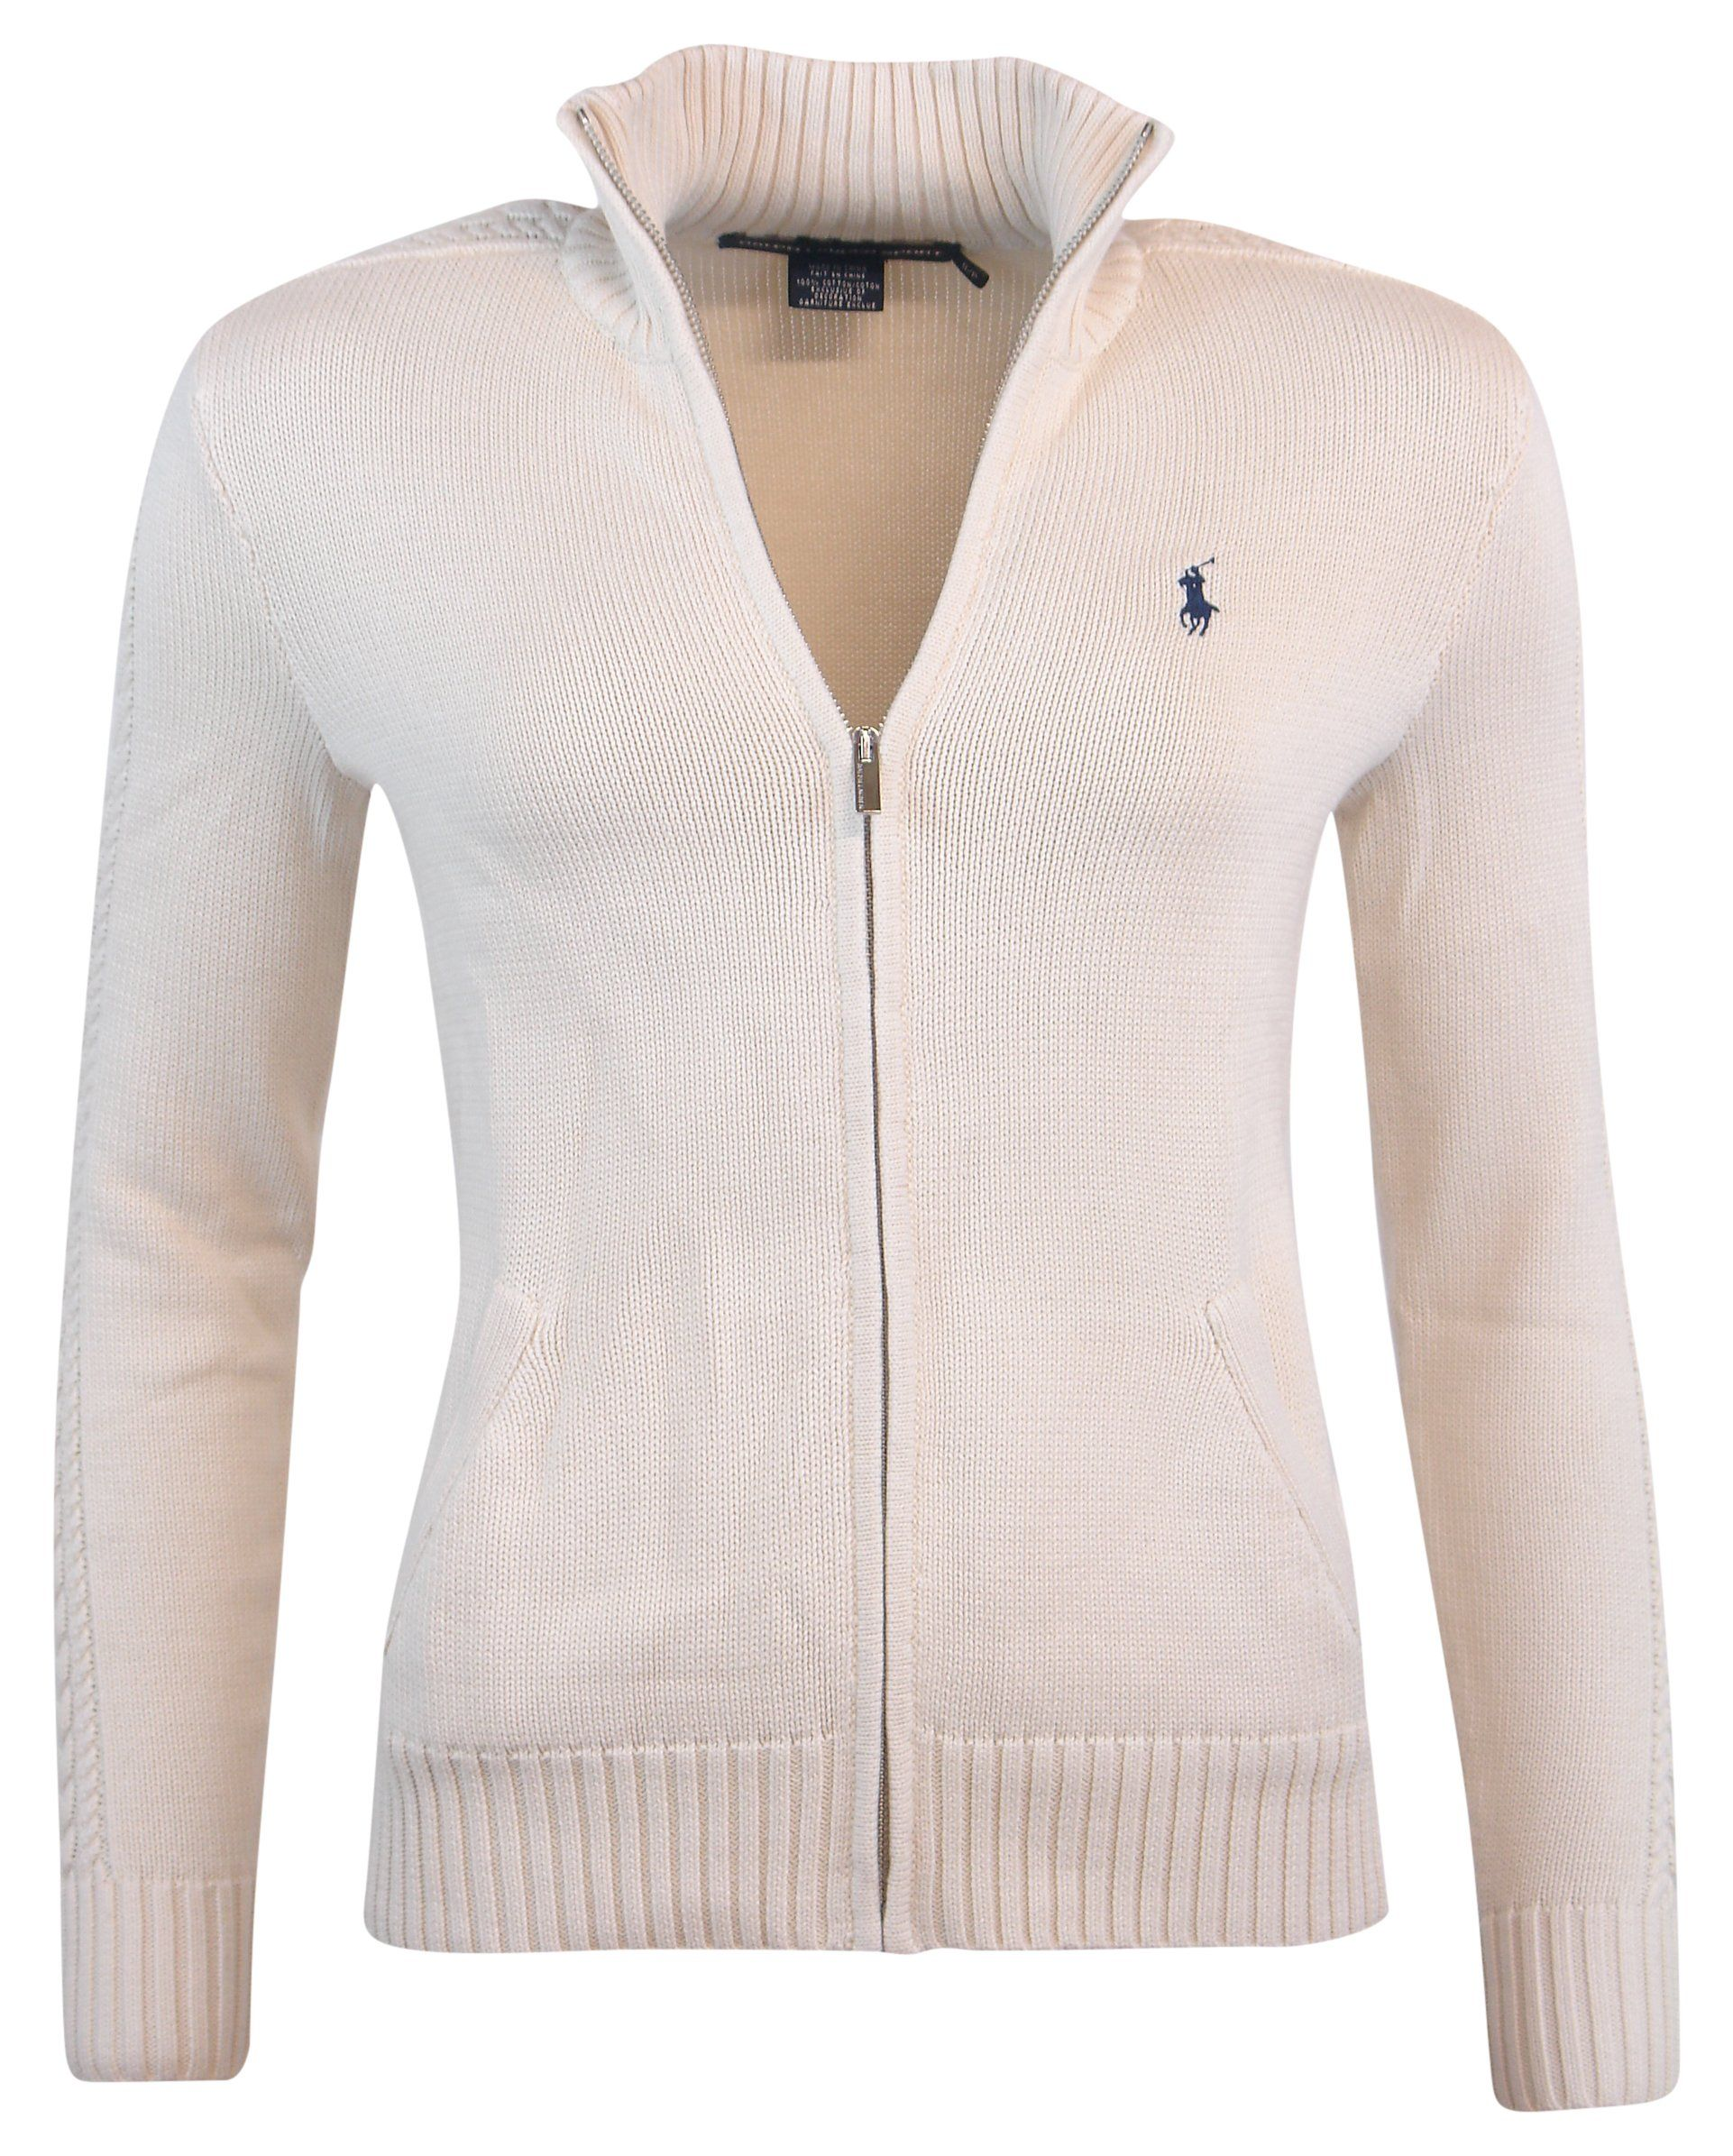 Ralph Zip Full Polo Womens Cardigan Sweater Xs Lauren shdtxBQroC